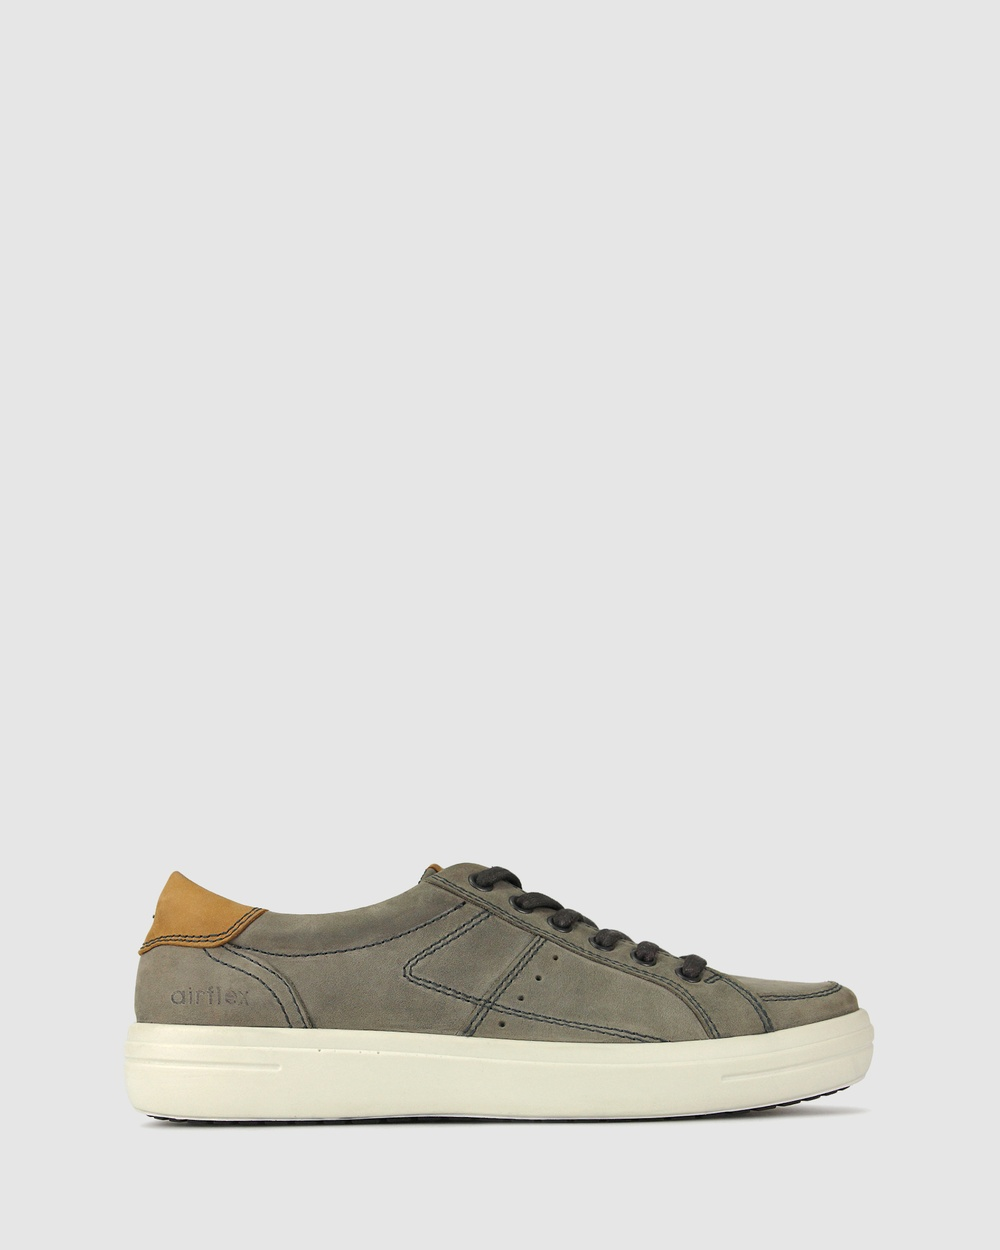 Airflex Lance Leather Sneakers Lifestyle Charcoal